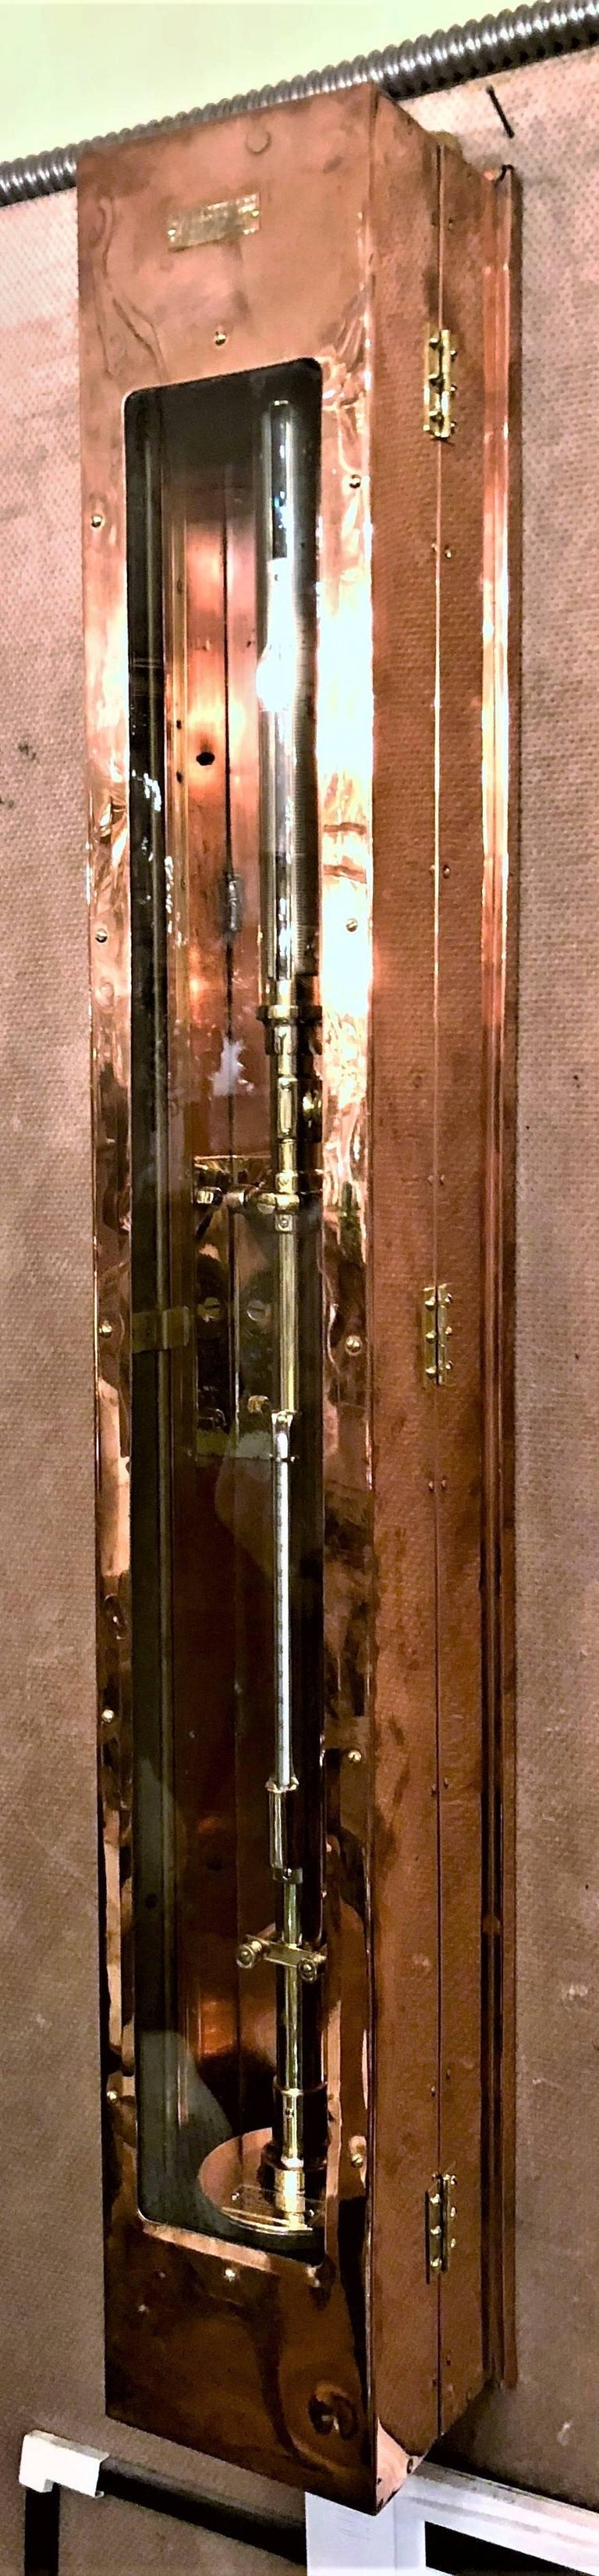 Welch Fixed Cistern Marine Barometer, circa 1942 In Excellent Condition For Sale In New Orleans, LA